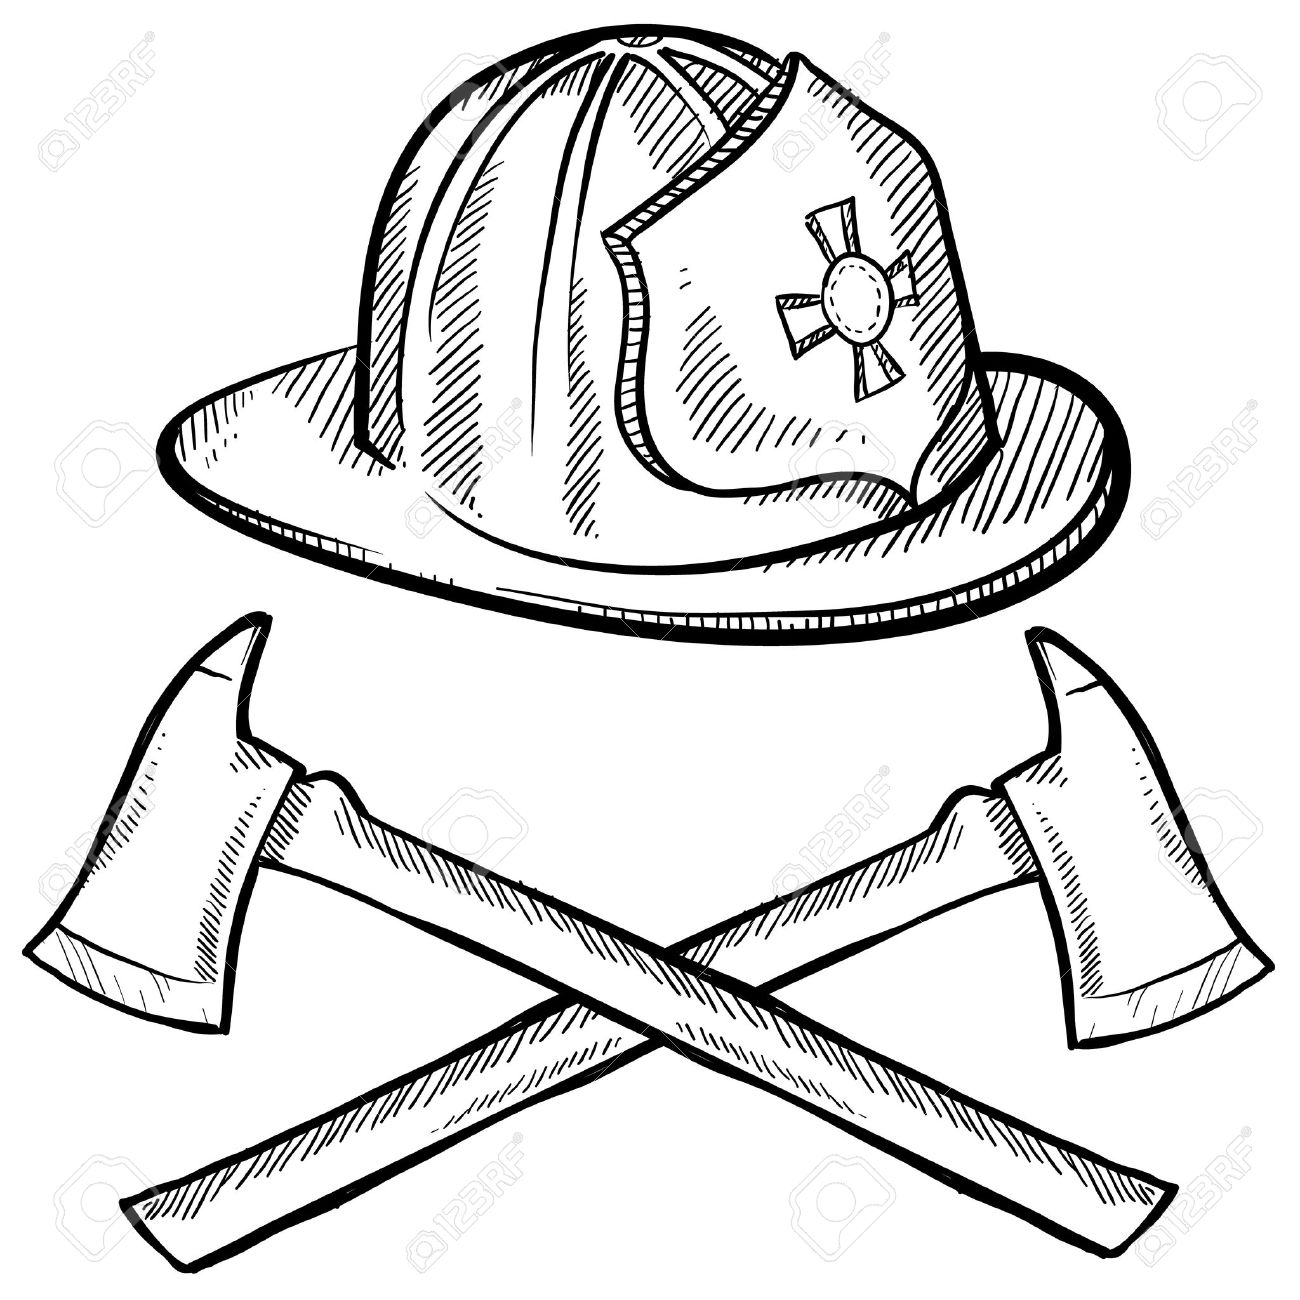 Doodle style firefighter's helmet and axes in vector format Stock Photo - 11575091